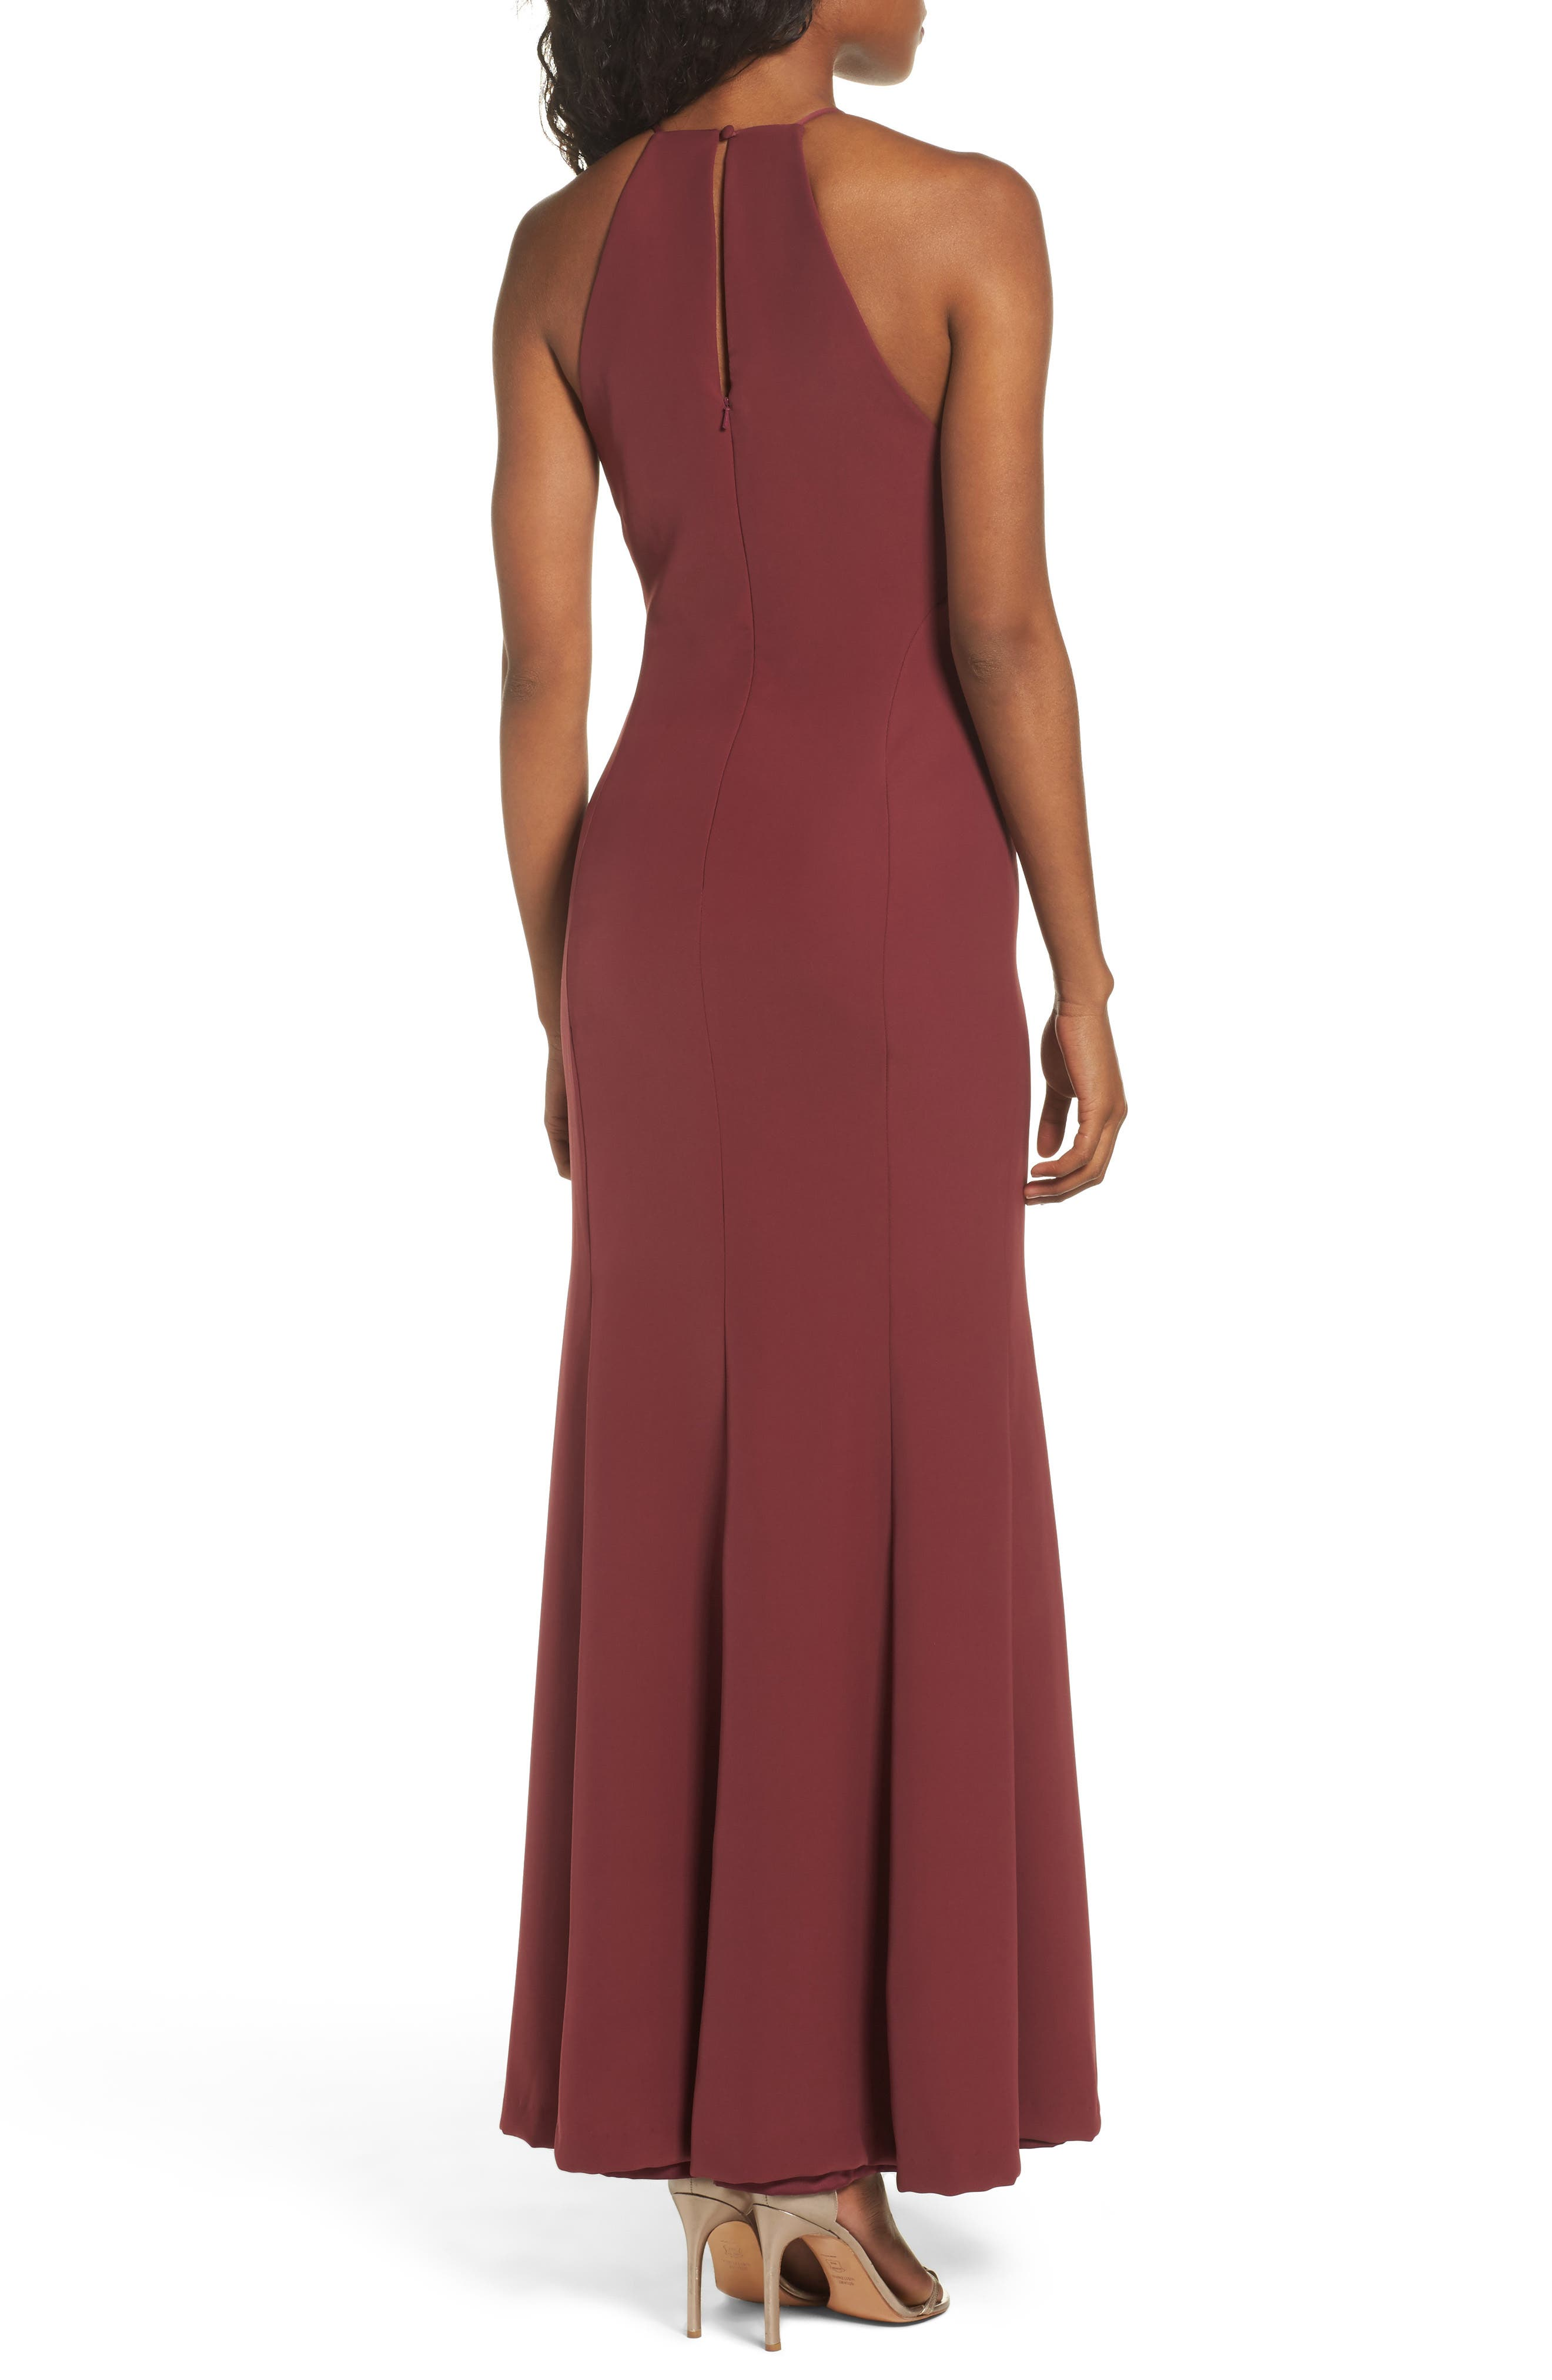 Watters bridesmaid wedding party dresses nordstrom ombrellifo Choice Image